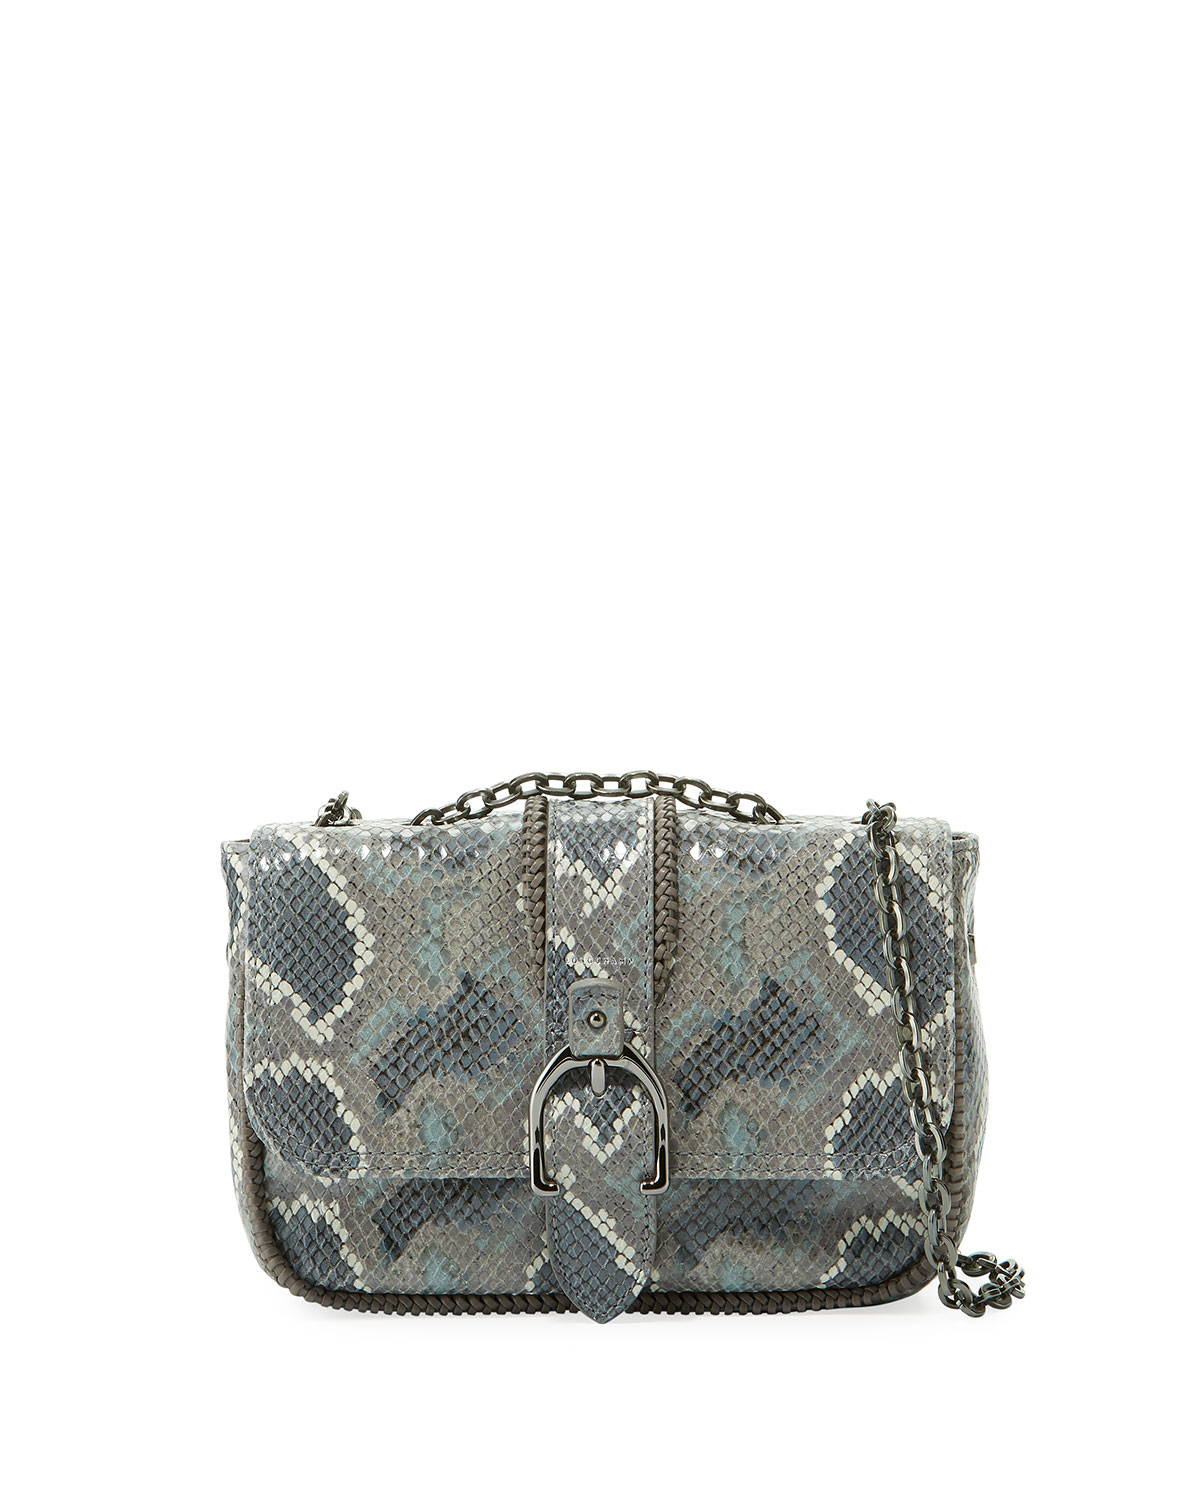 c3d1189953 Longchamp Amazon Python Mini Crossbody Bag